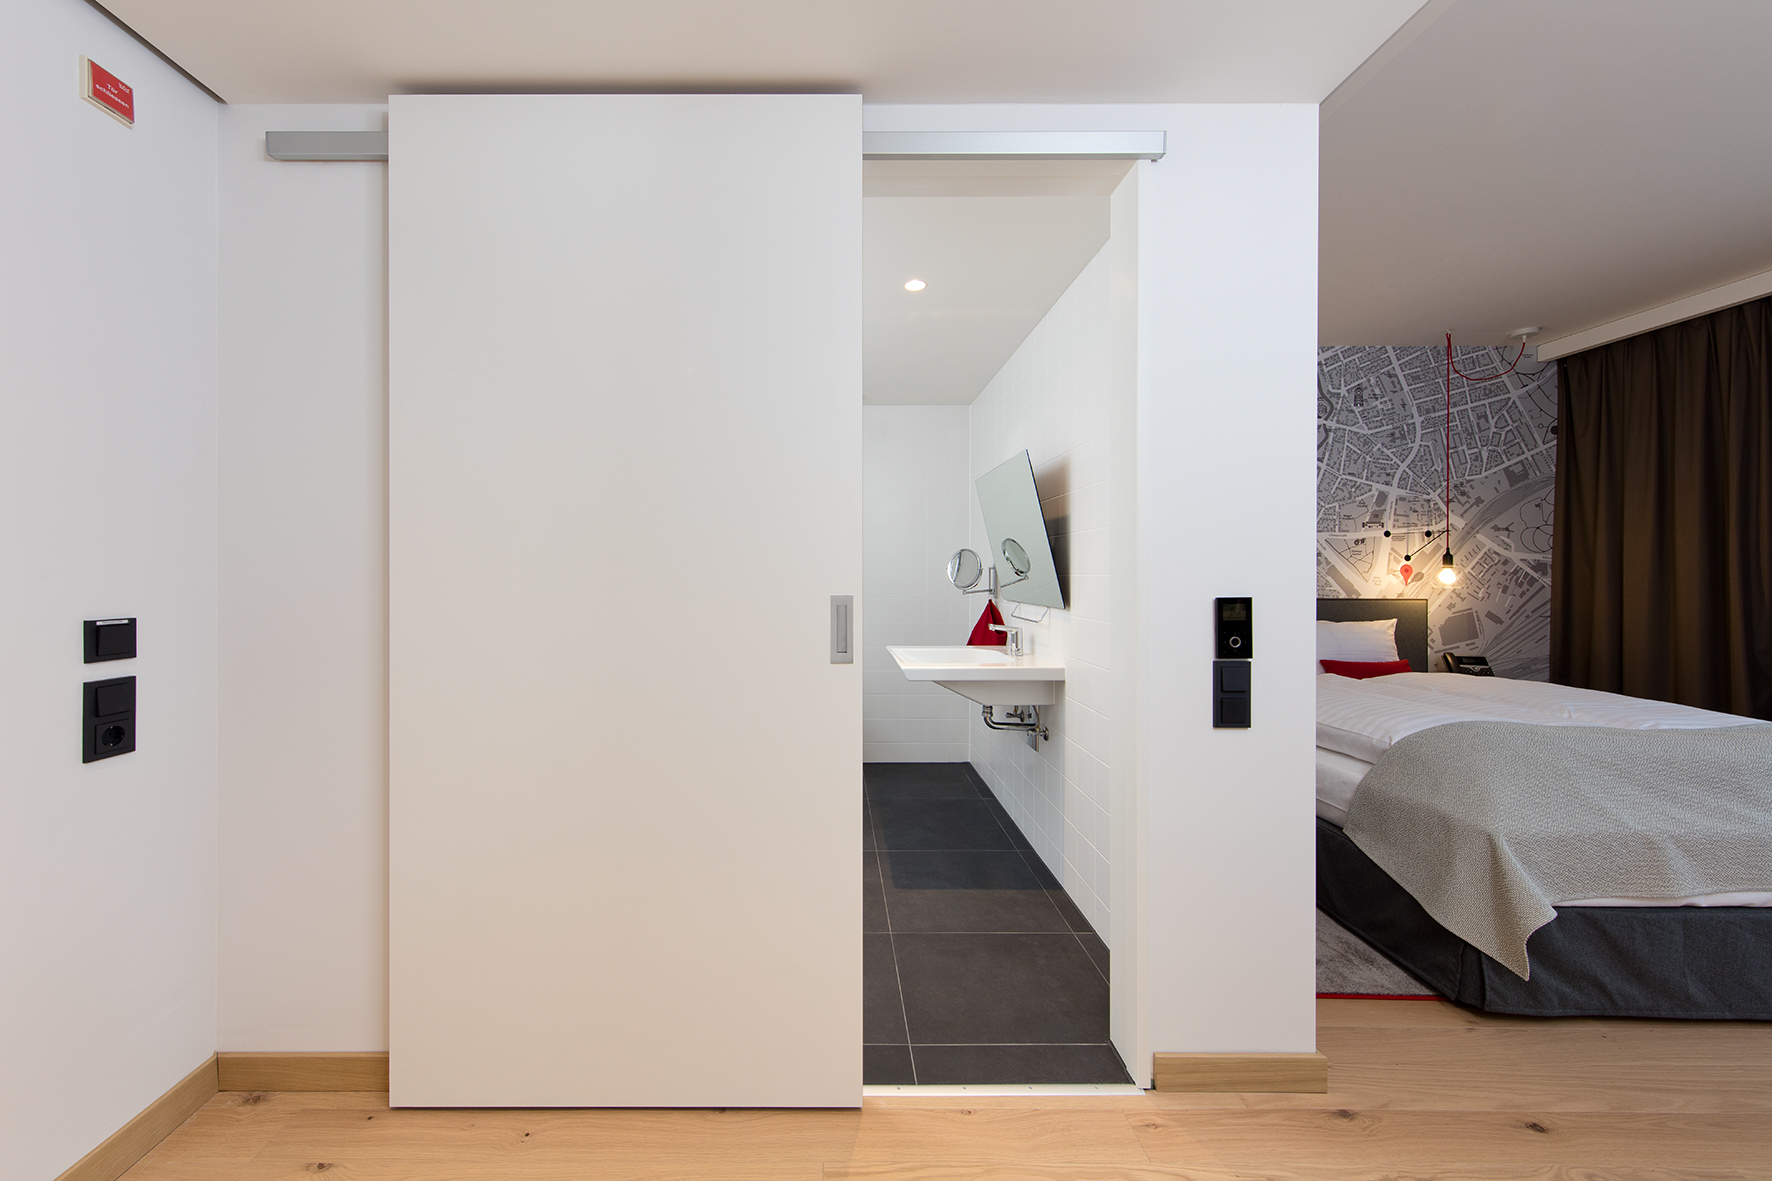 The bathrooms are designed as internal zones: The sliding doors with Häfele Slido Design 40-V sliding door fittings save space and provide freedom of movement.